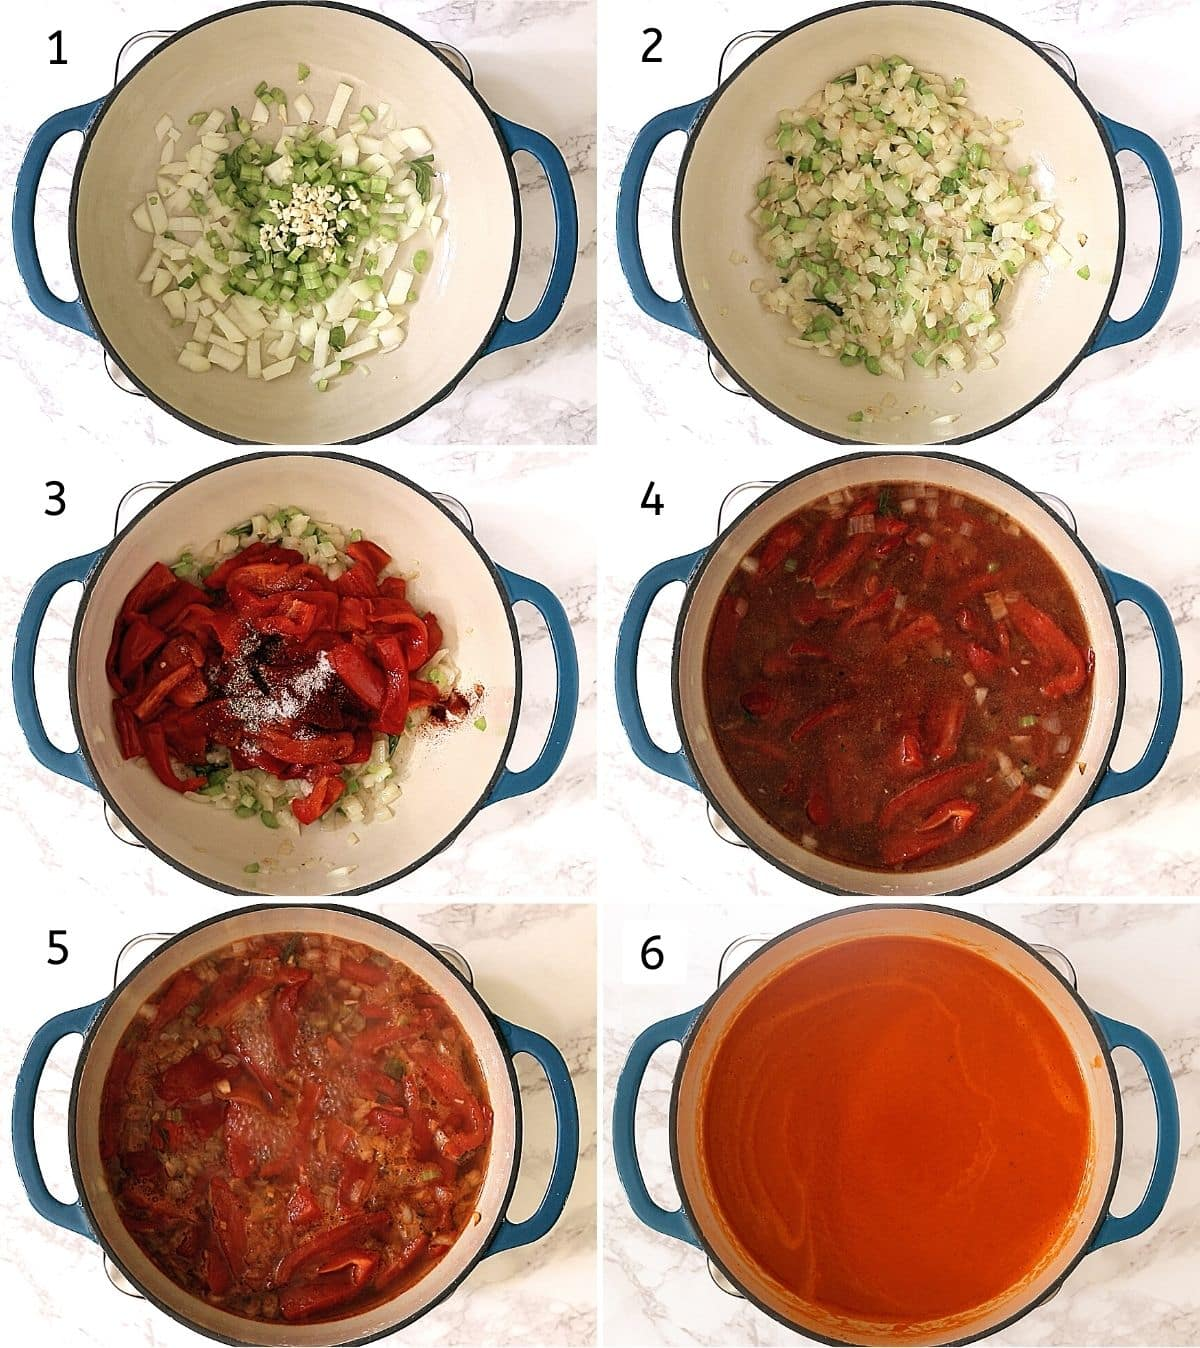 Collage of 6 steps showing adding onion, celery, garlic in oil, cooking, adding roasted peppers, spices, adding stock, simmering, blended soup.